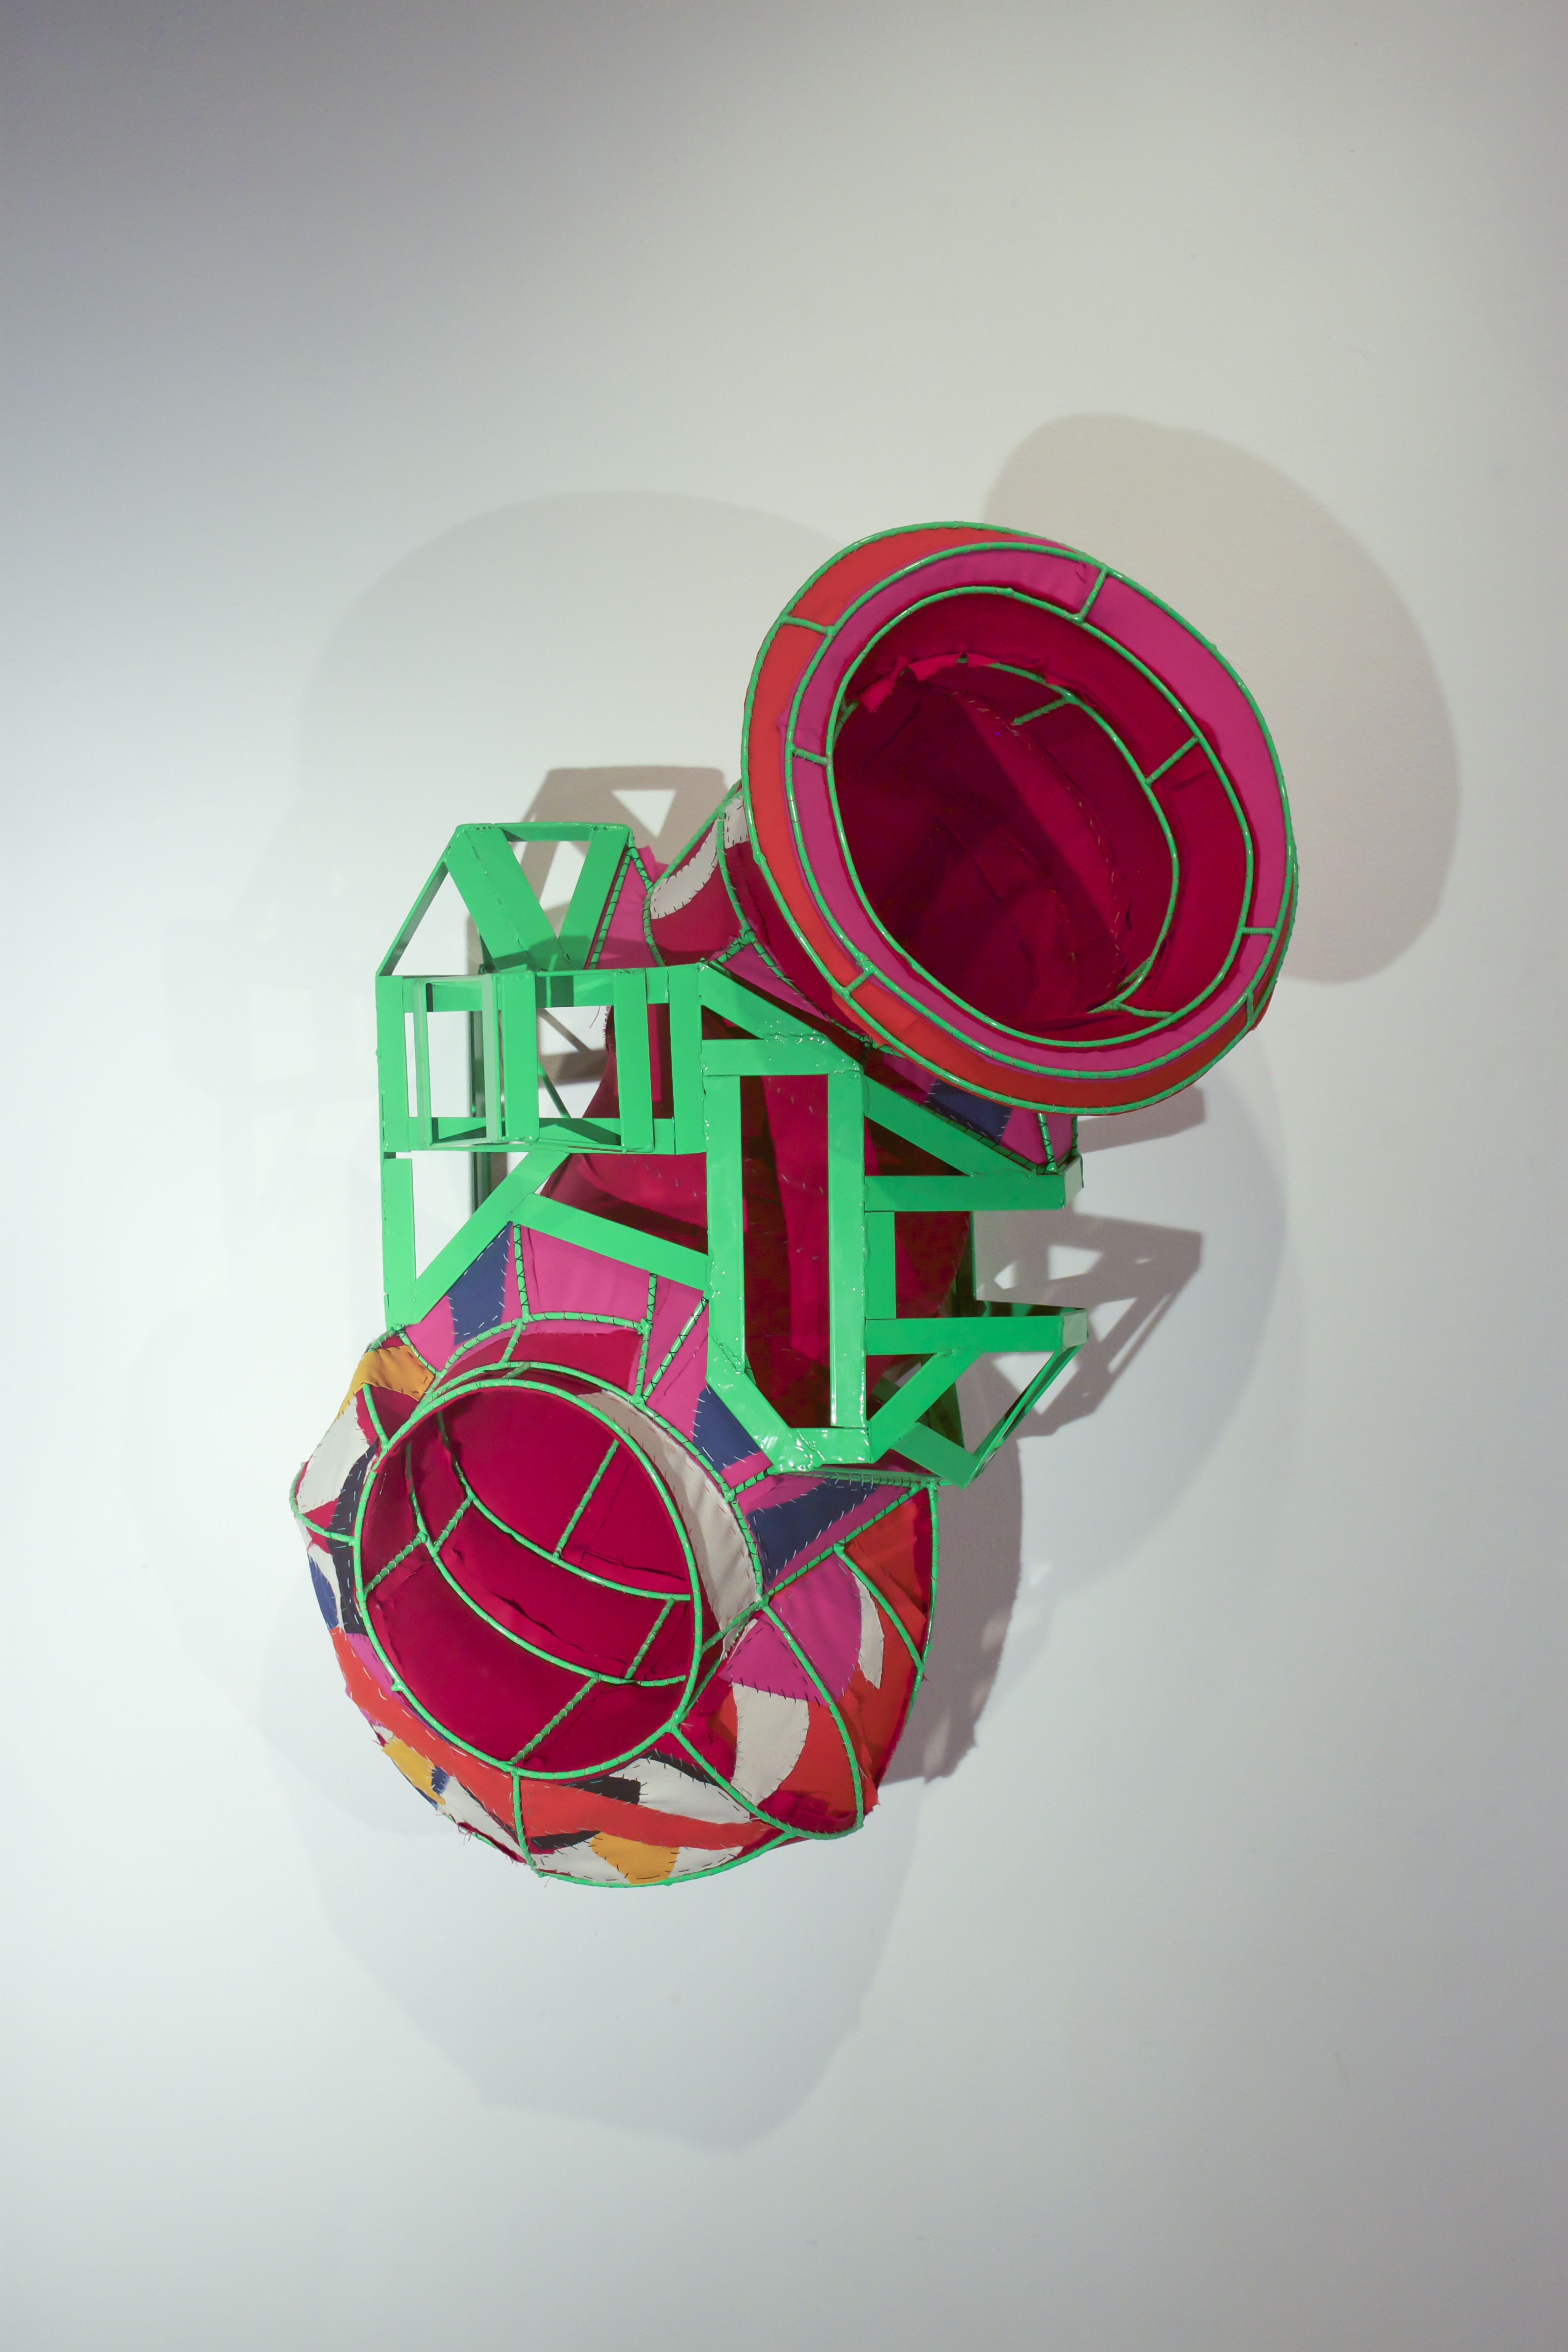 Marriage, 2014 Steel, canvas 40 x 26 x 22 inches  By artist Chad Waples